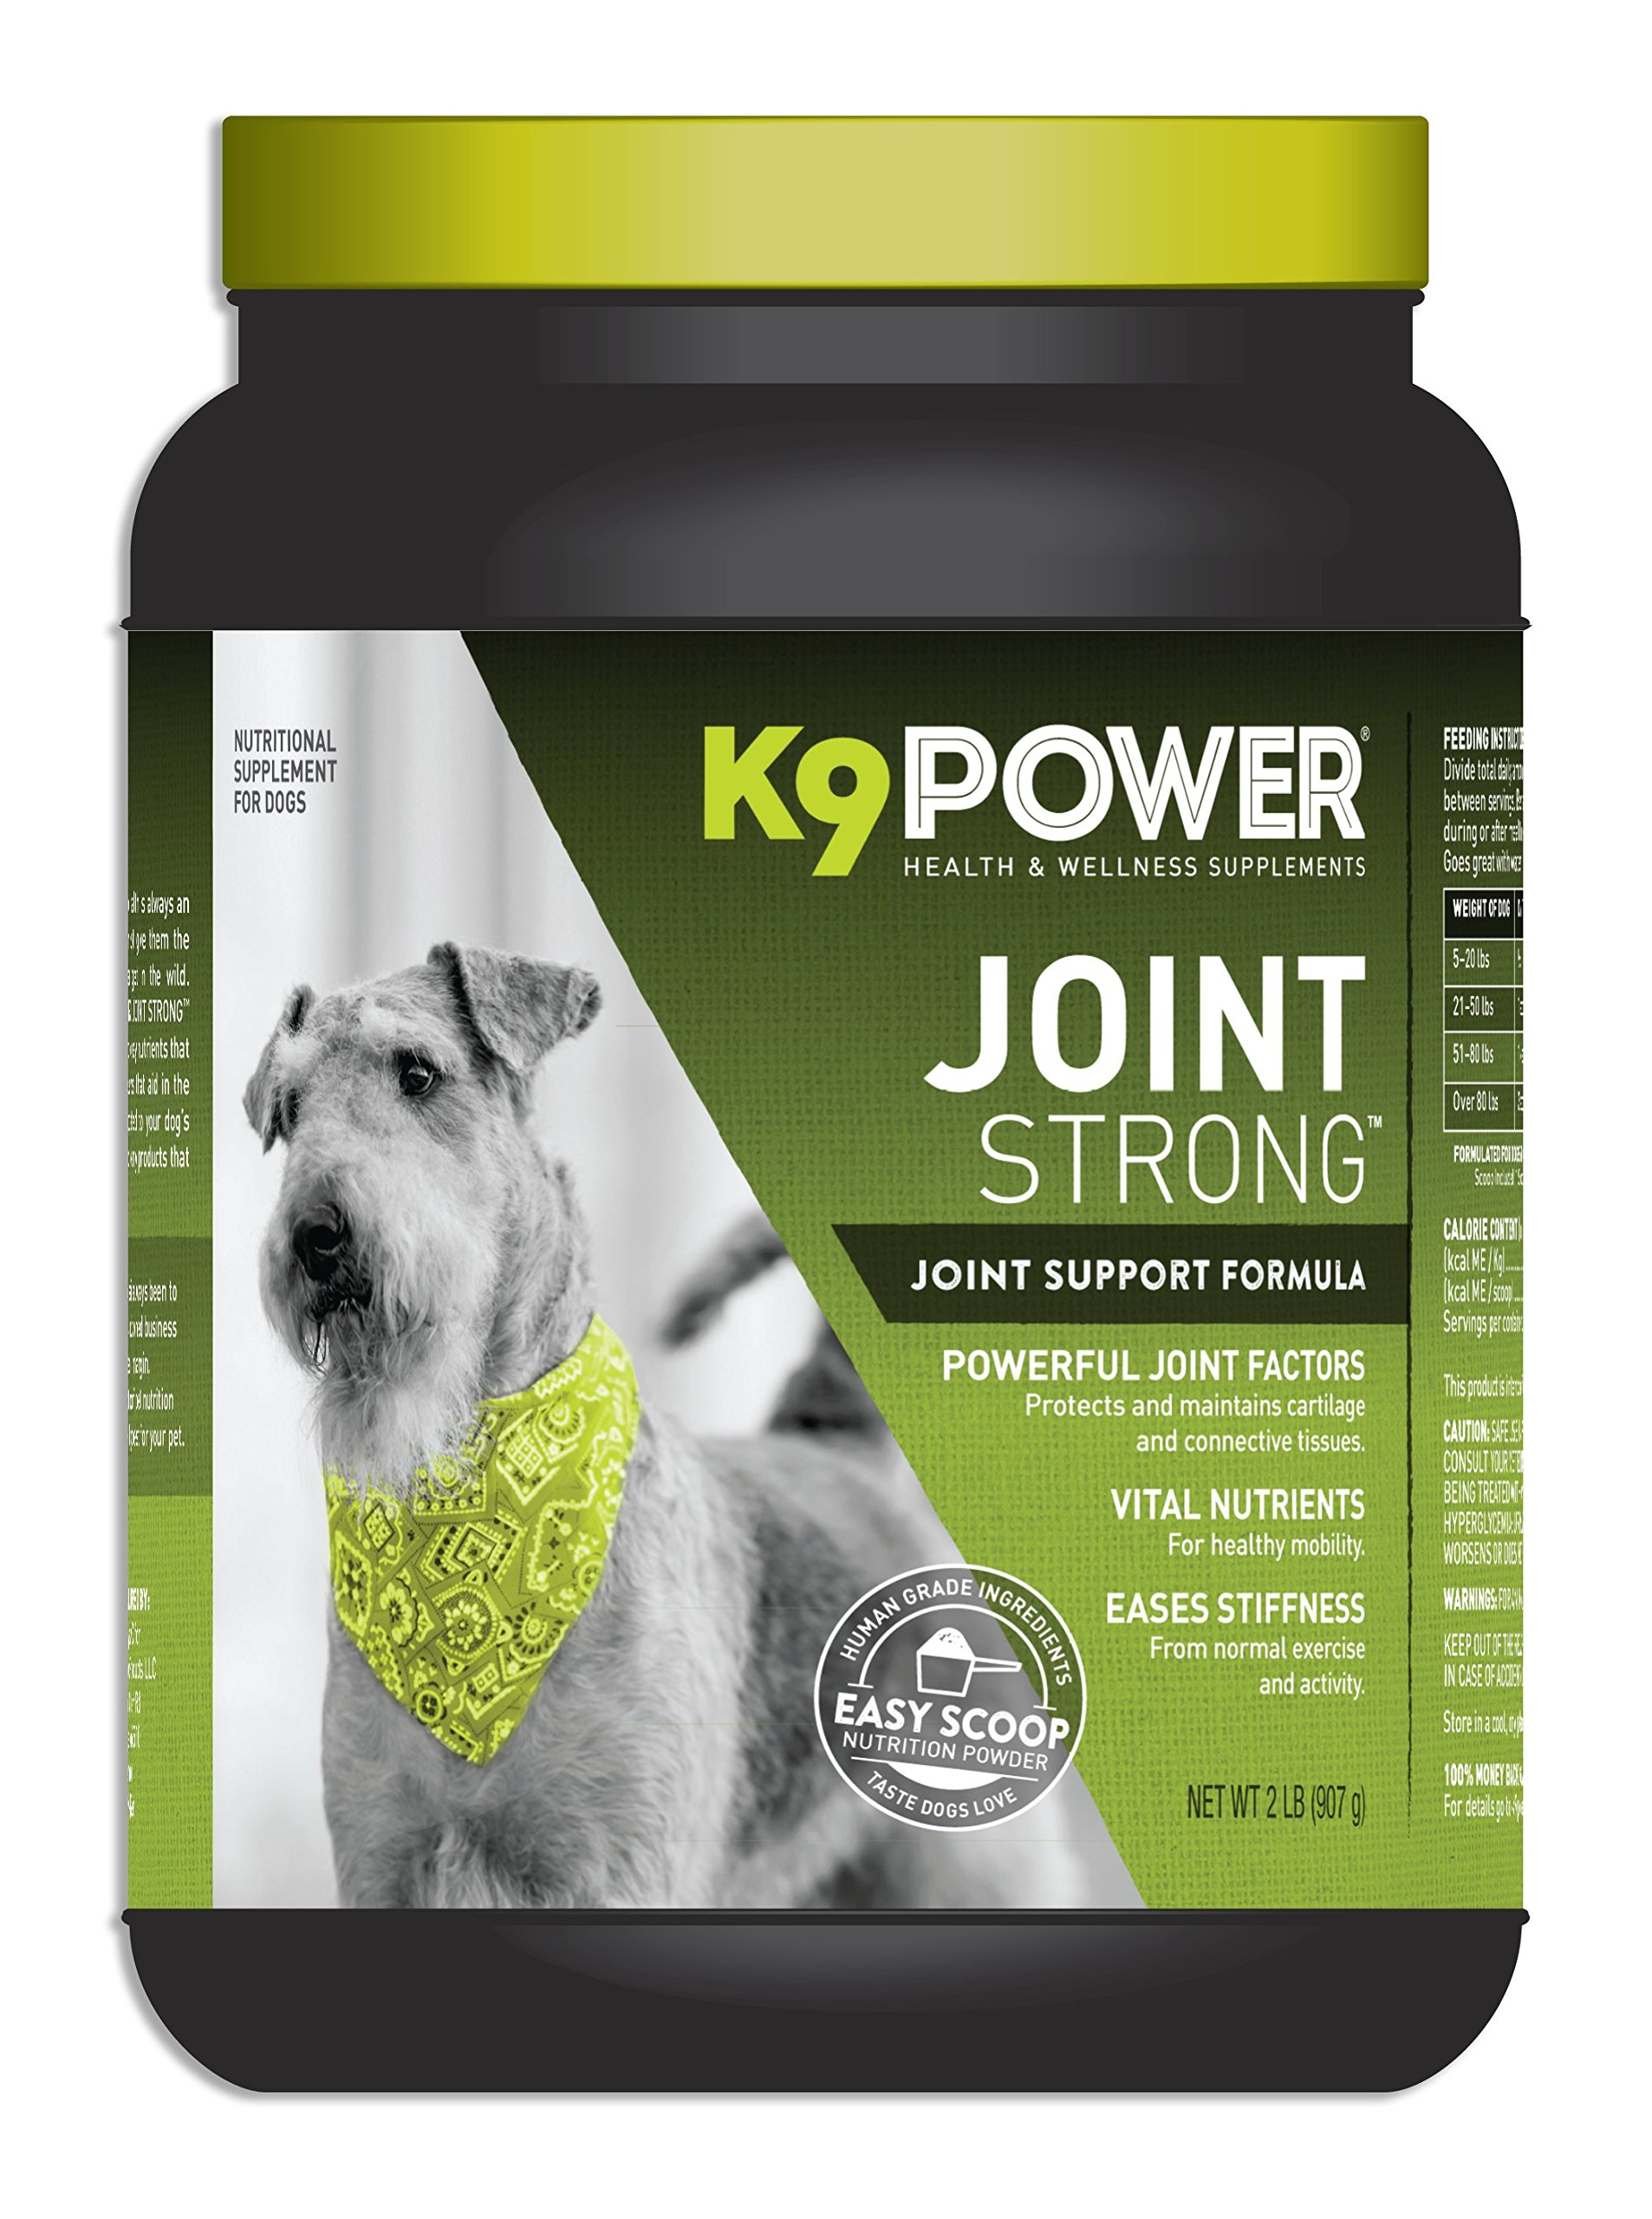 K9 Power Joint Strong - Joint Support Formula For Your Dog's Joint Health and Mobility - 2 Pound by K9-Power (Image #1)